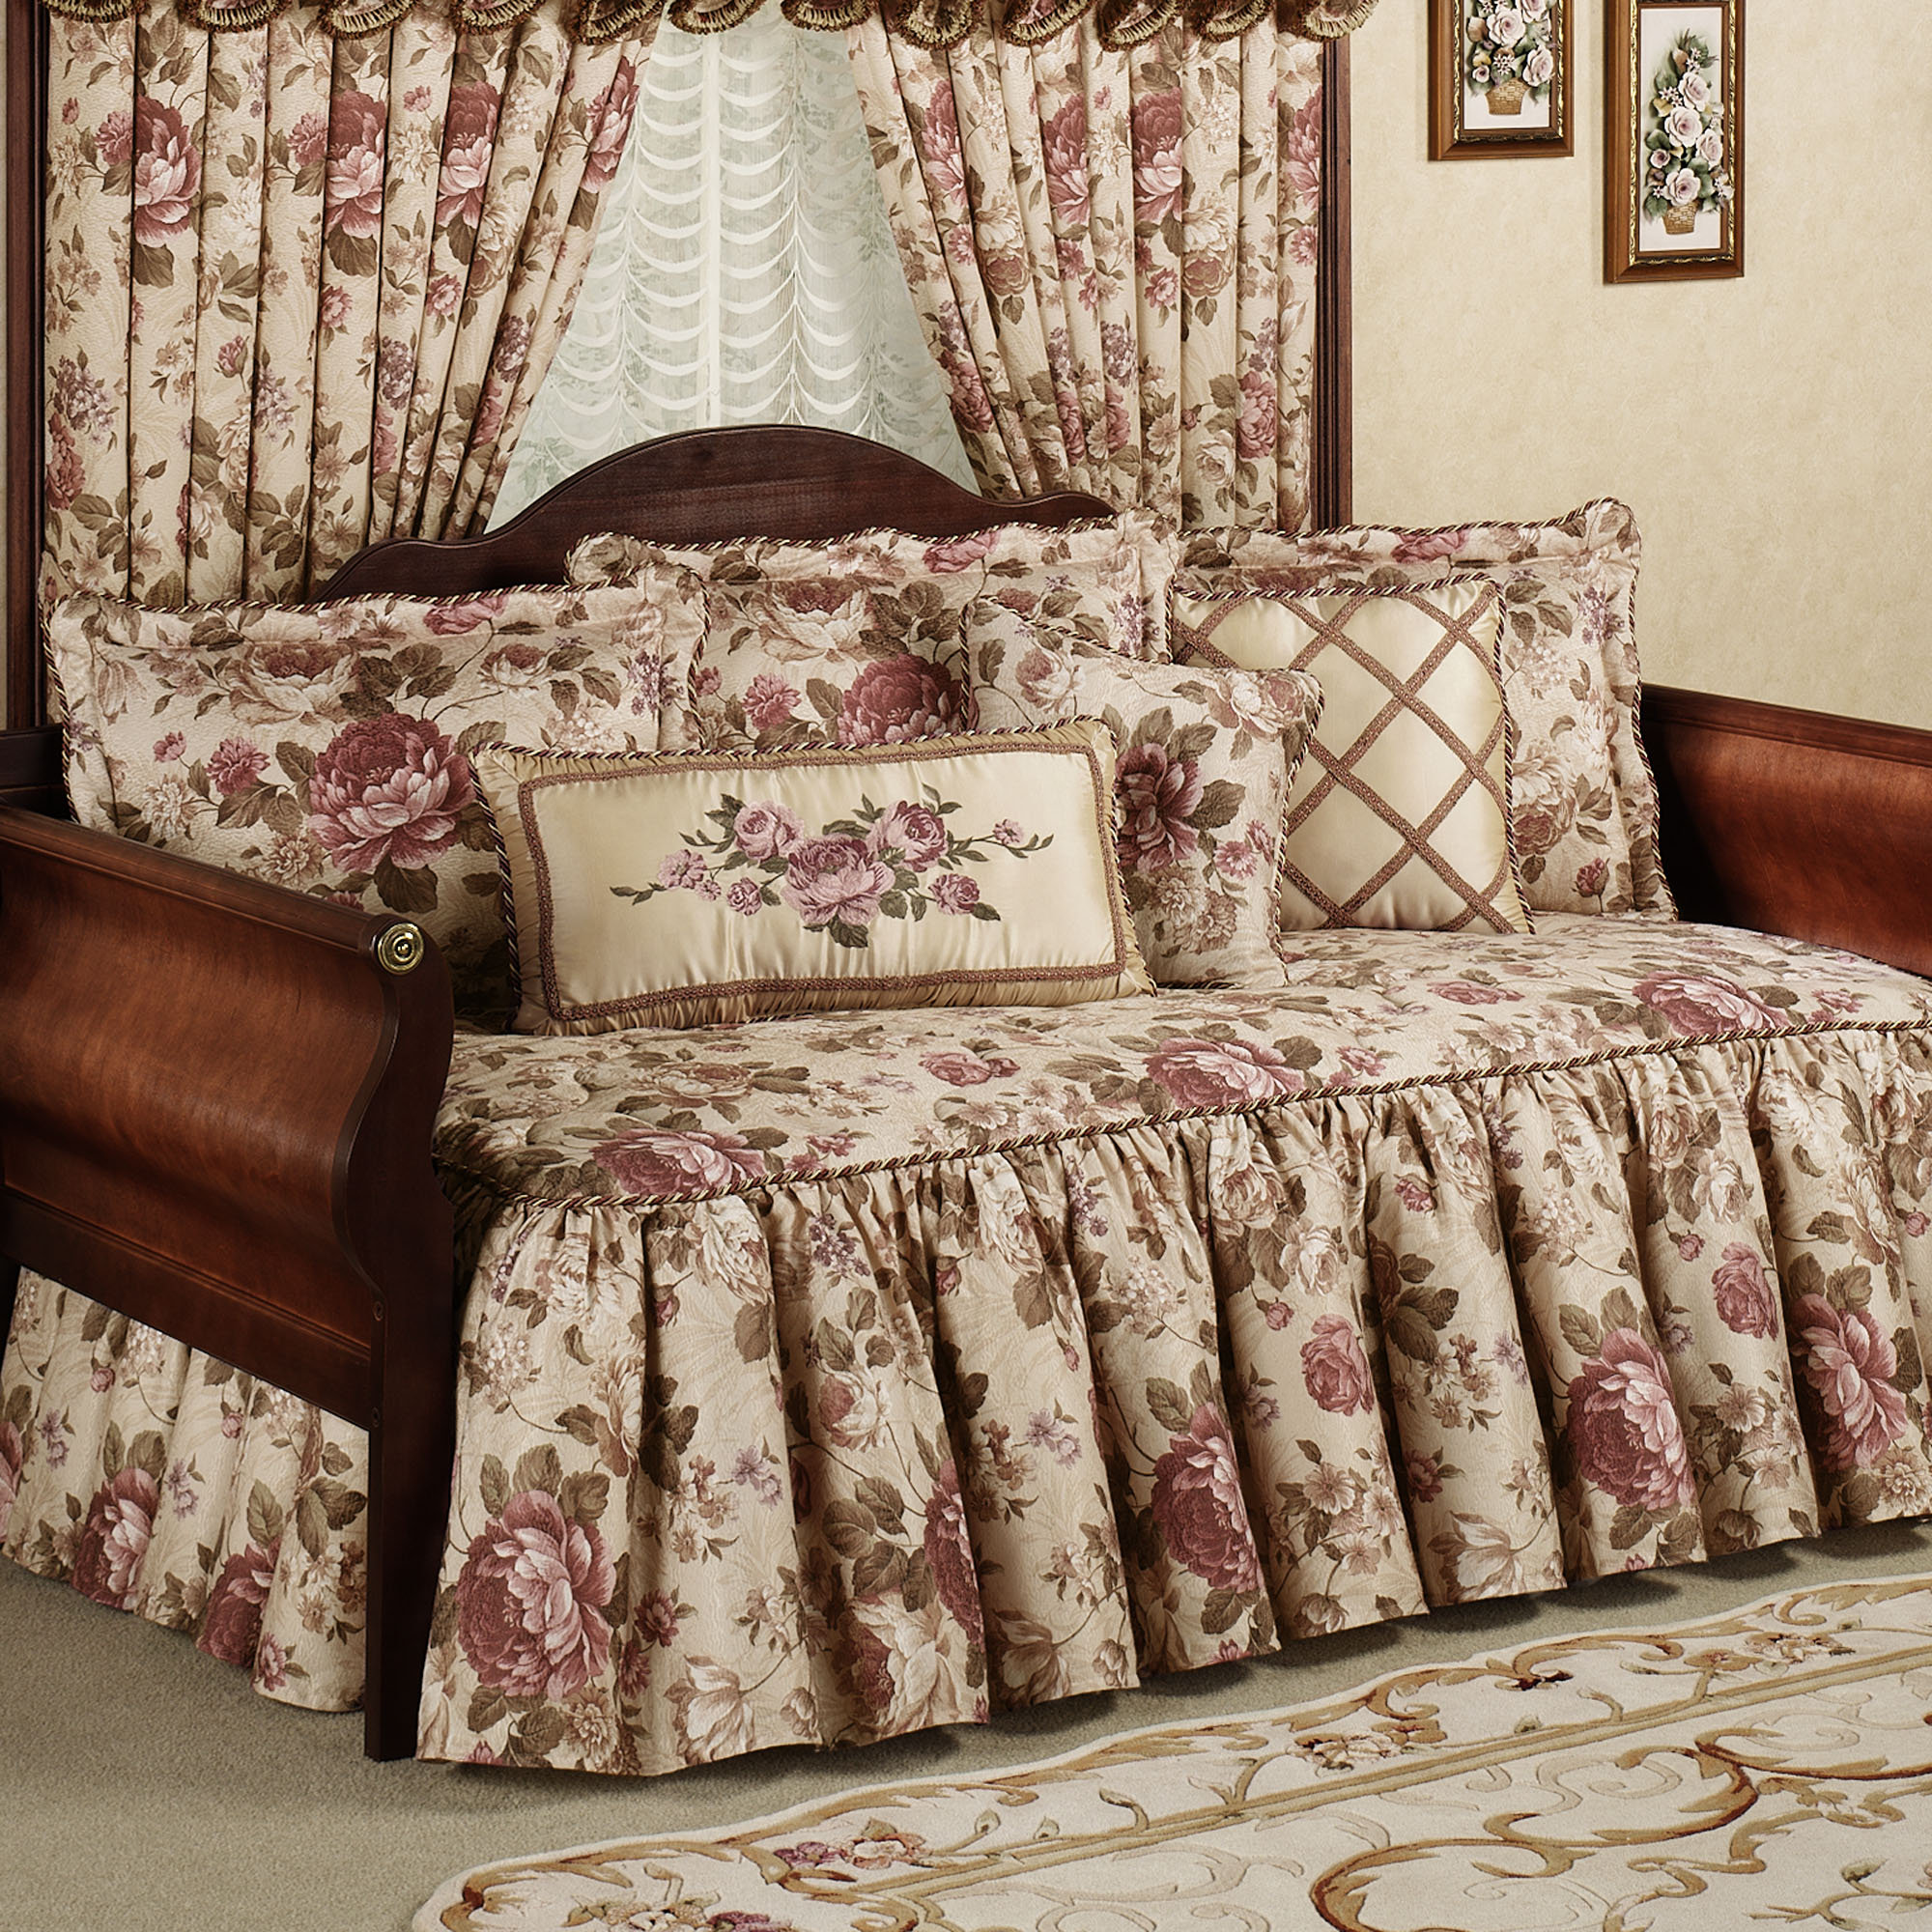 Floral Daybed Bedding Sets Photo 3